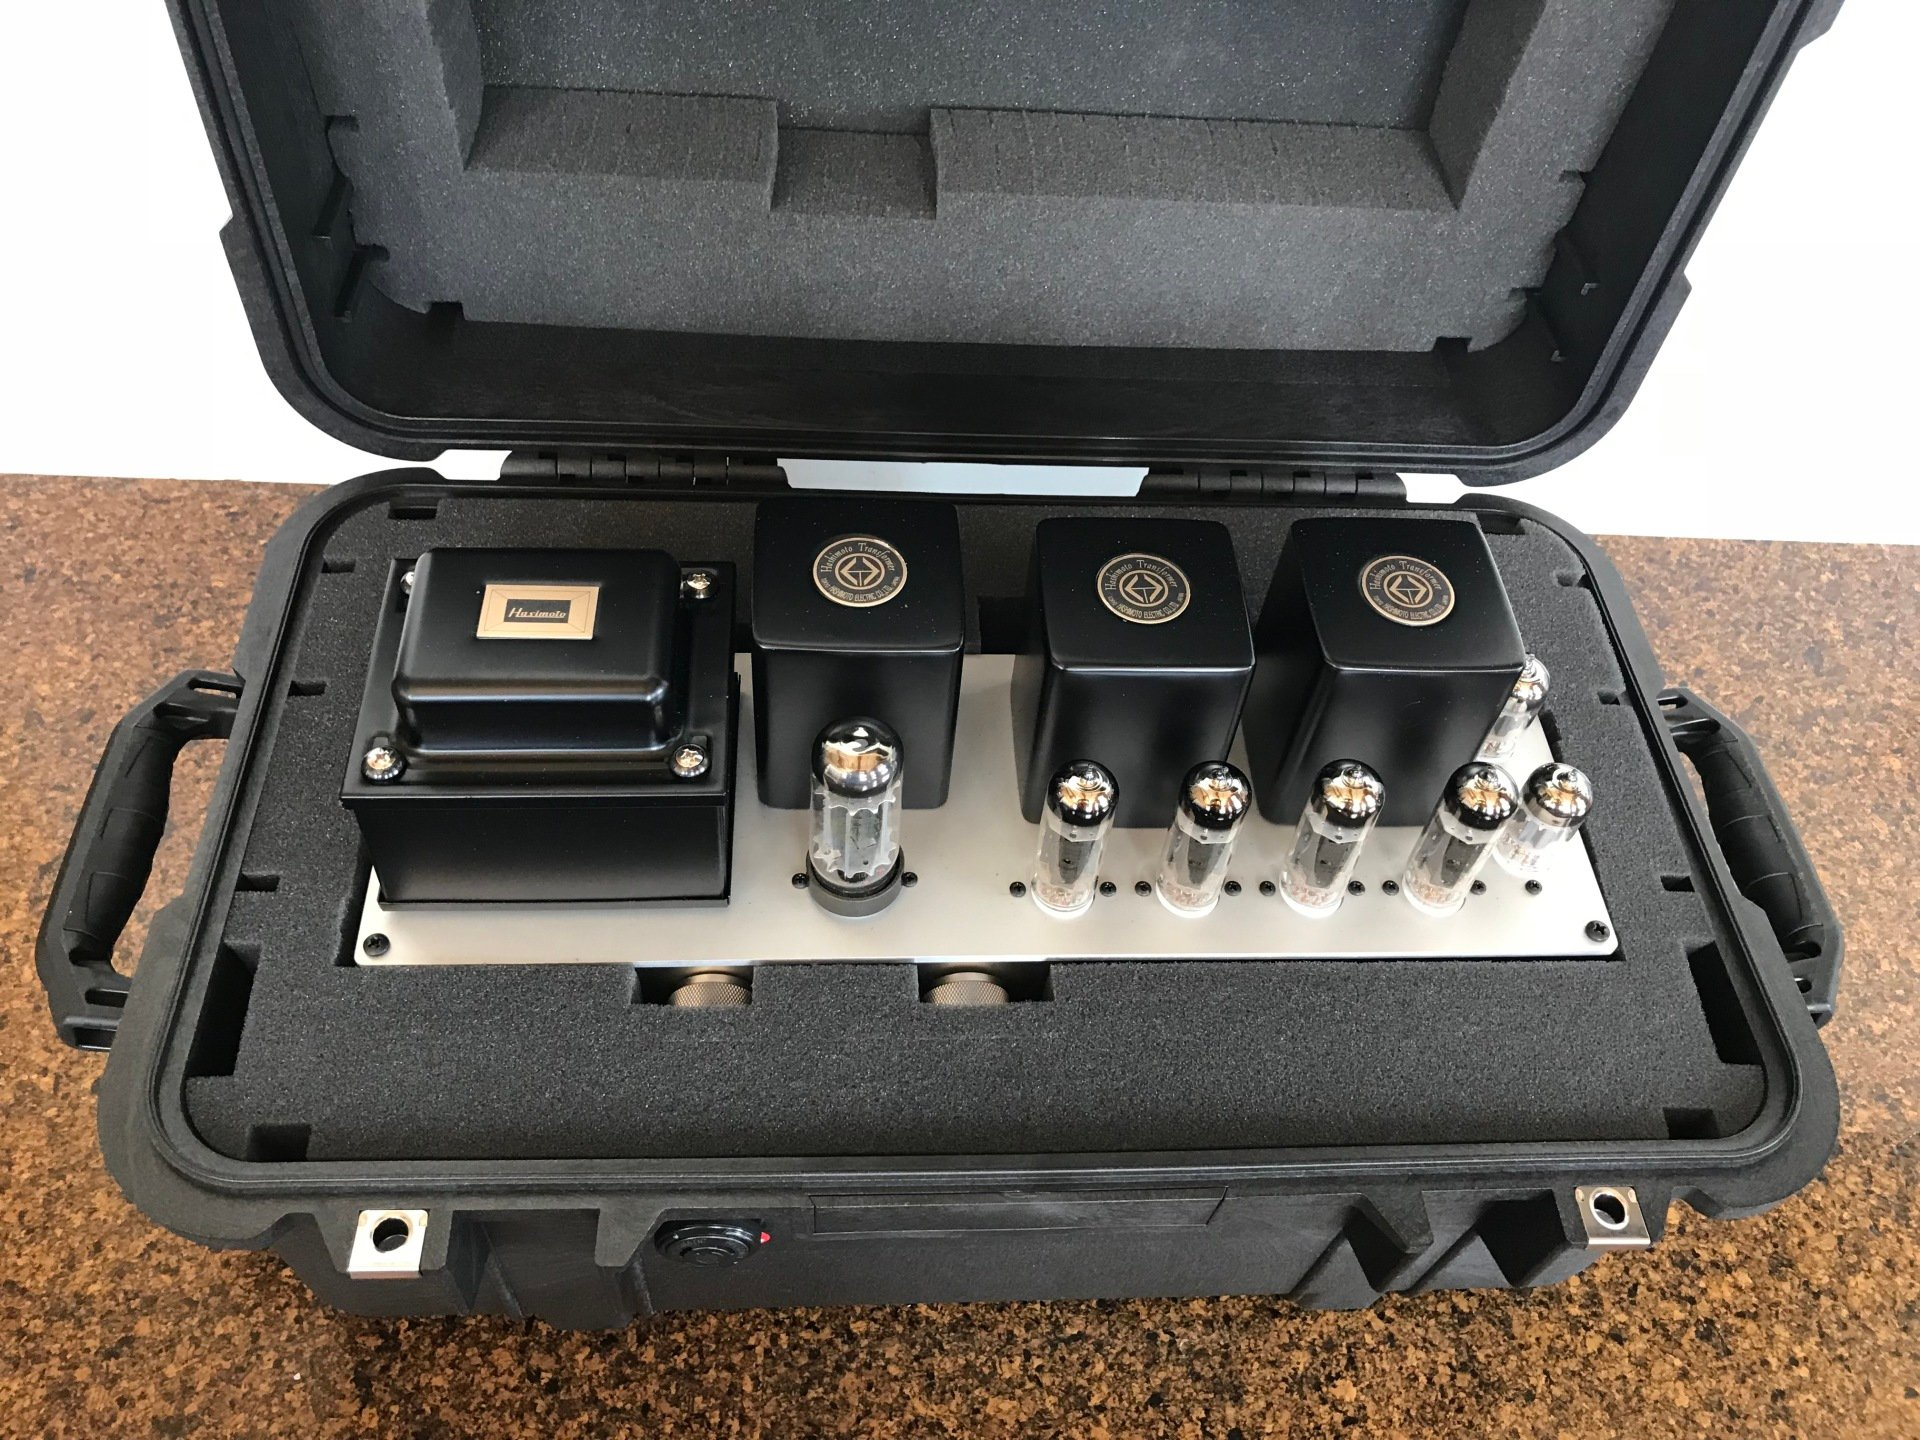 Optional Pelican Shipping Case